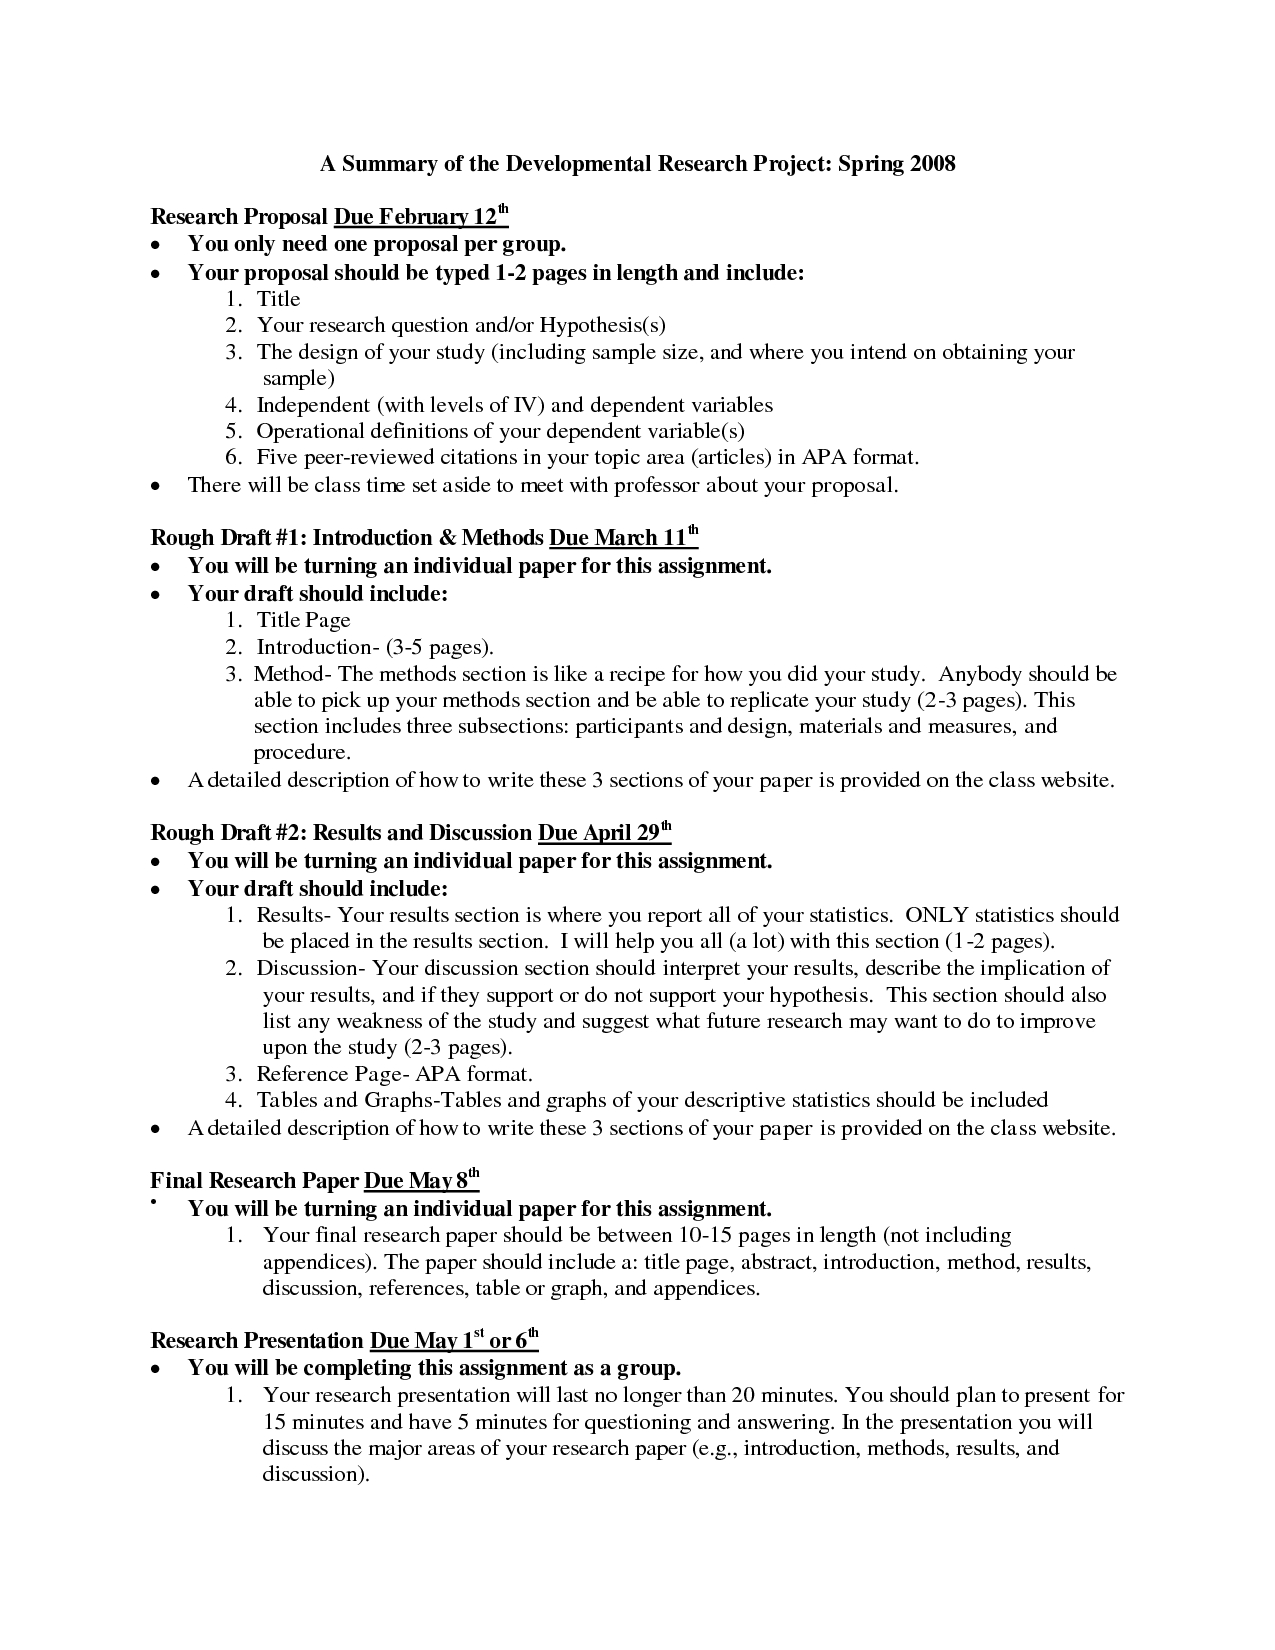 012 Good Research Paper Topic Psychology Undergraduate Resume Unique Sample Singular Topics For High School 2019 Easy Reddit Full